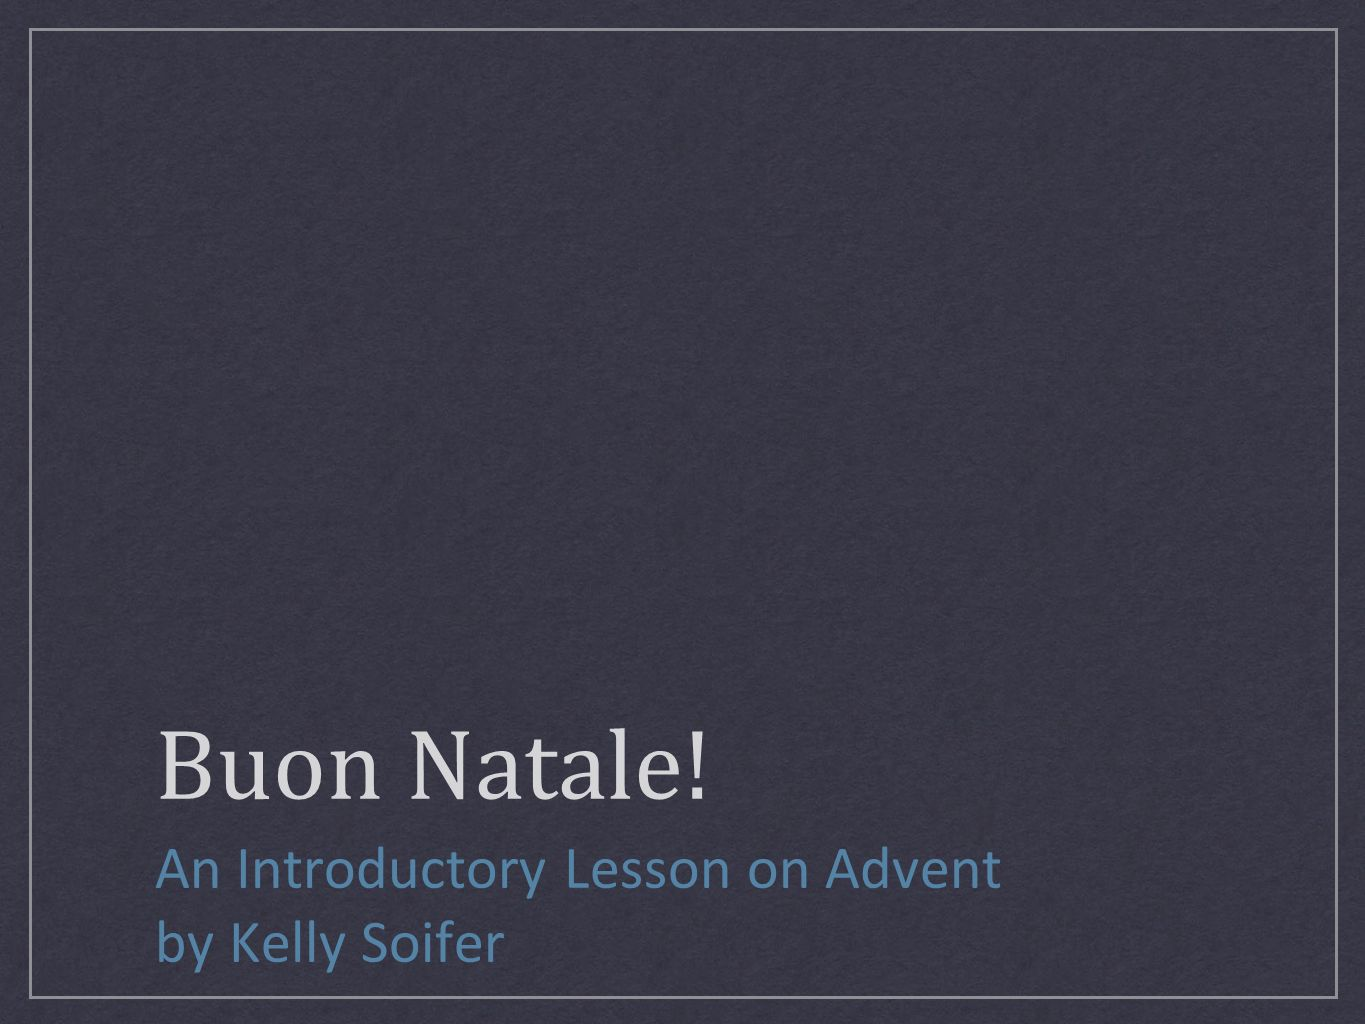 Buon Natale! An Introductory Lesson on Advent by Kelly Soifer